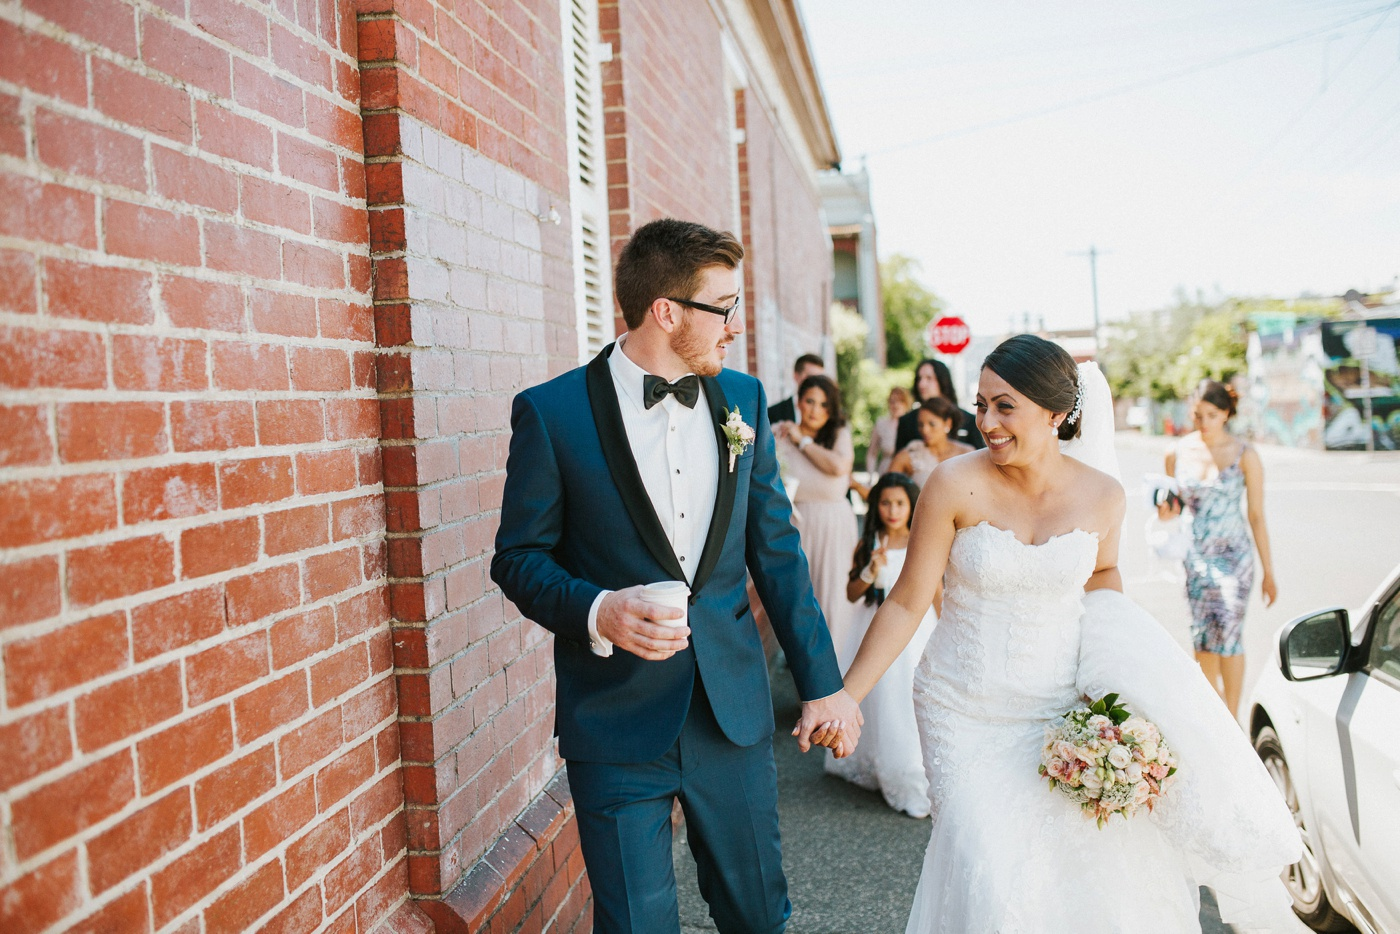 Sharon&Rob_Melbourne-Wedding-Photography_Elegant-Relaxed-Urban_Blog-16